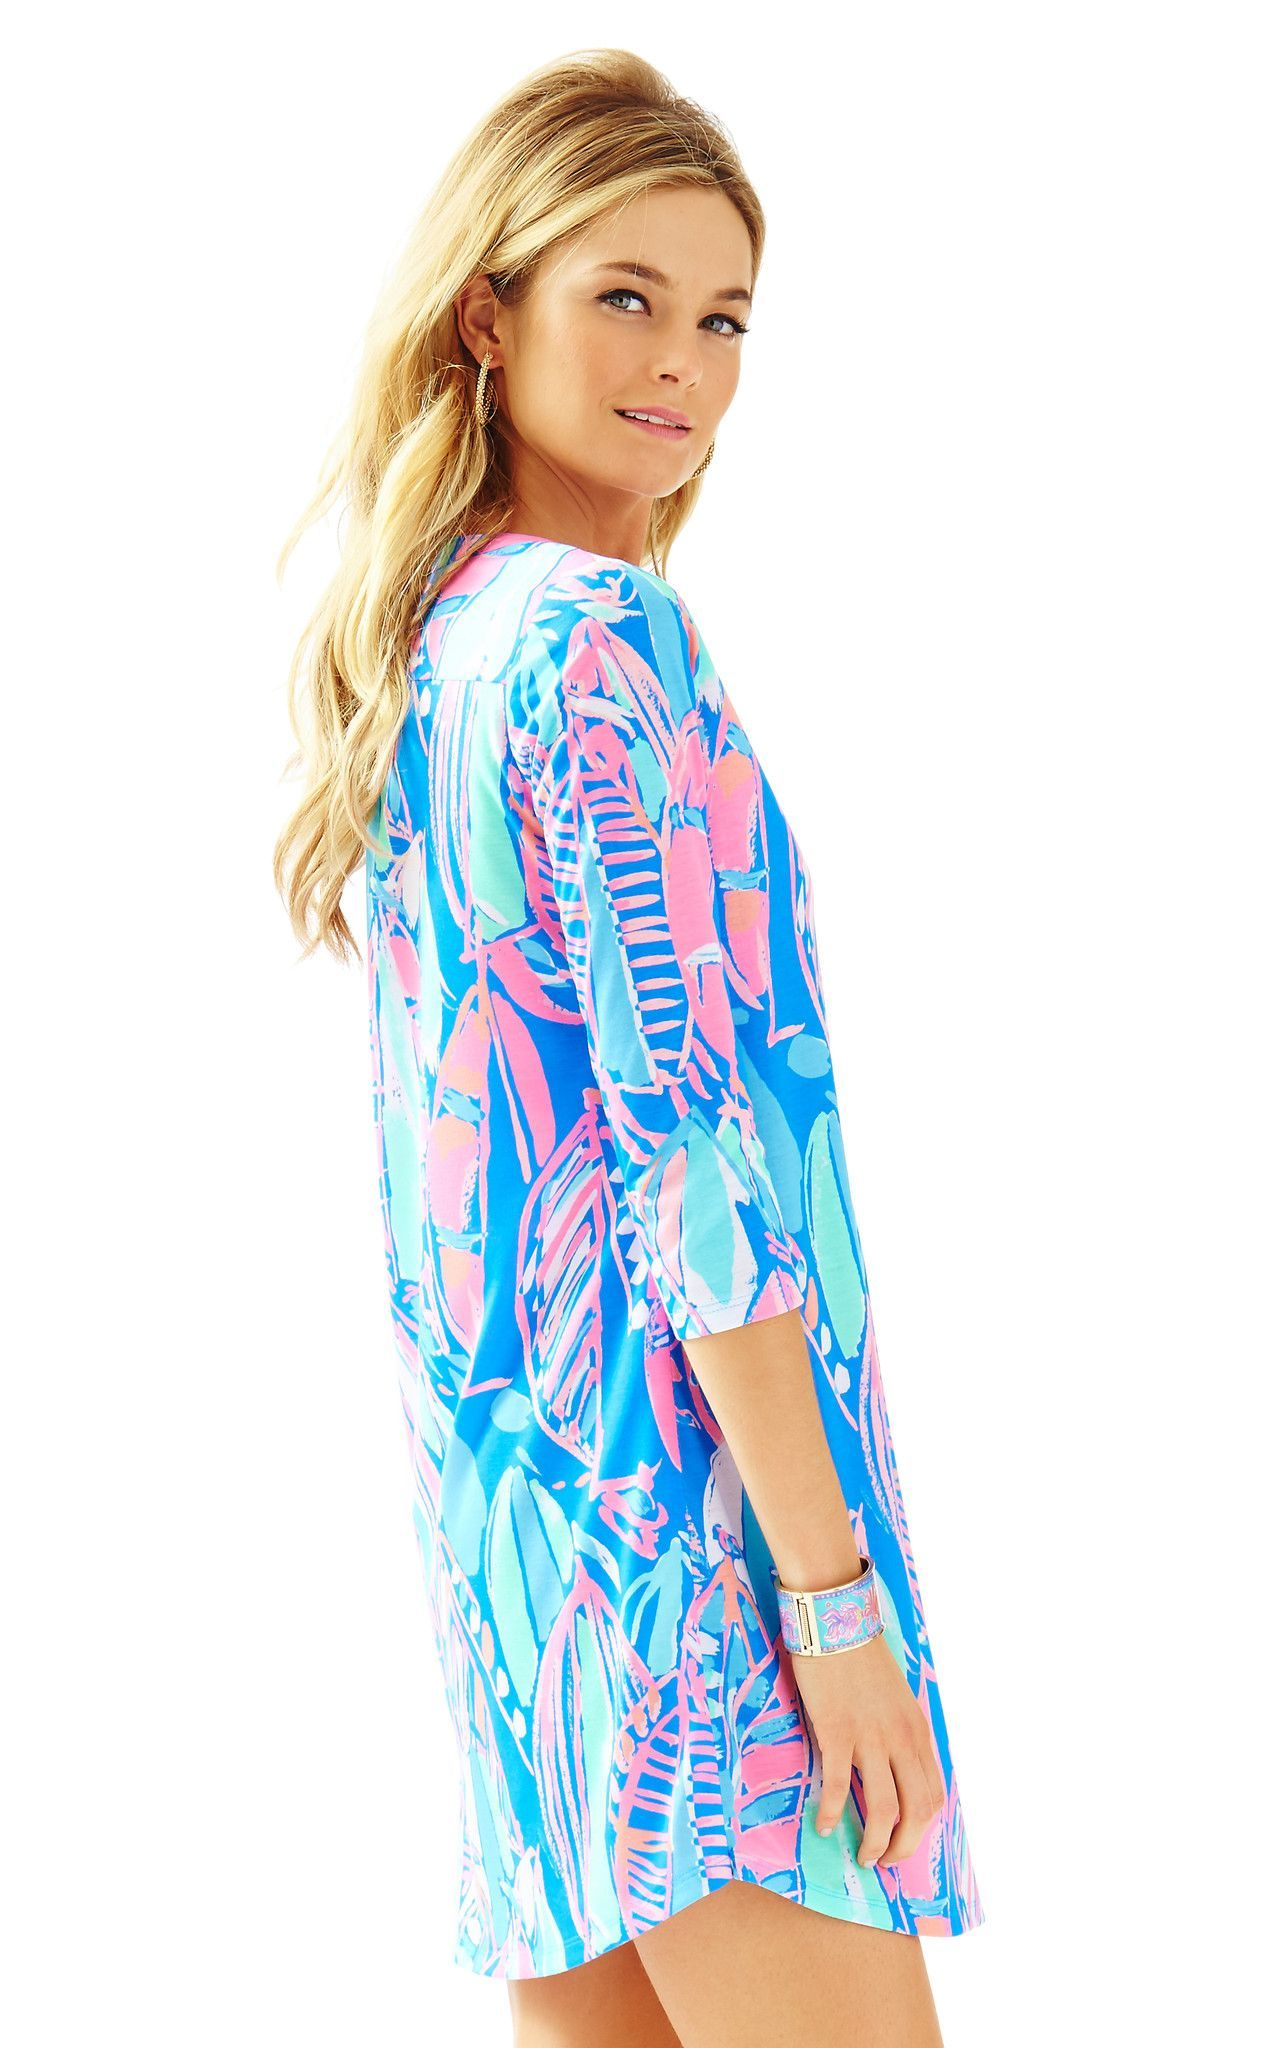 63463e74fe540d ALI DRESS - BAY BLUE OUT TO SEA BY LILLY PULITZER | Wish list ...